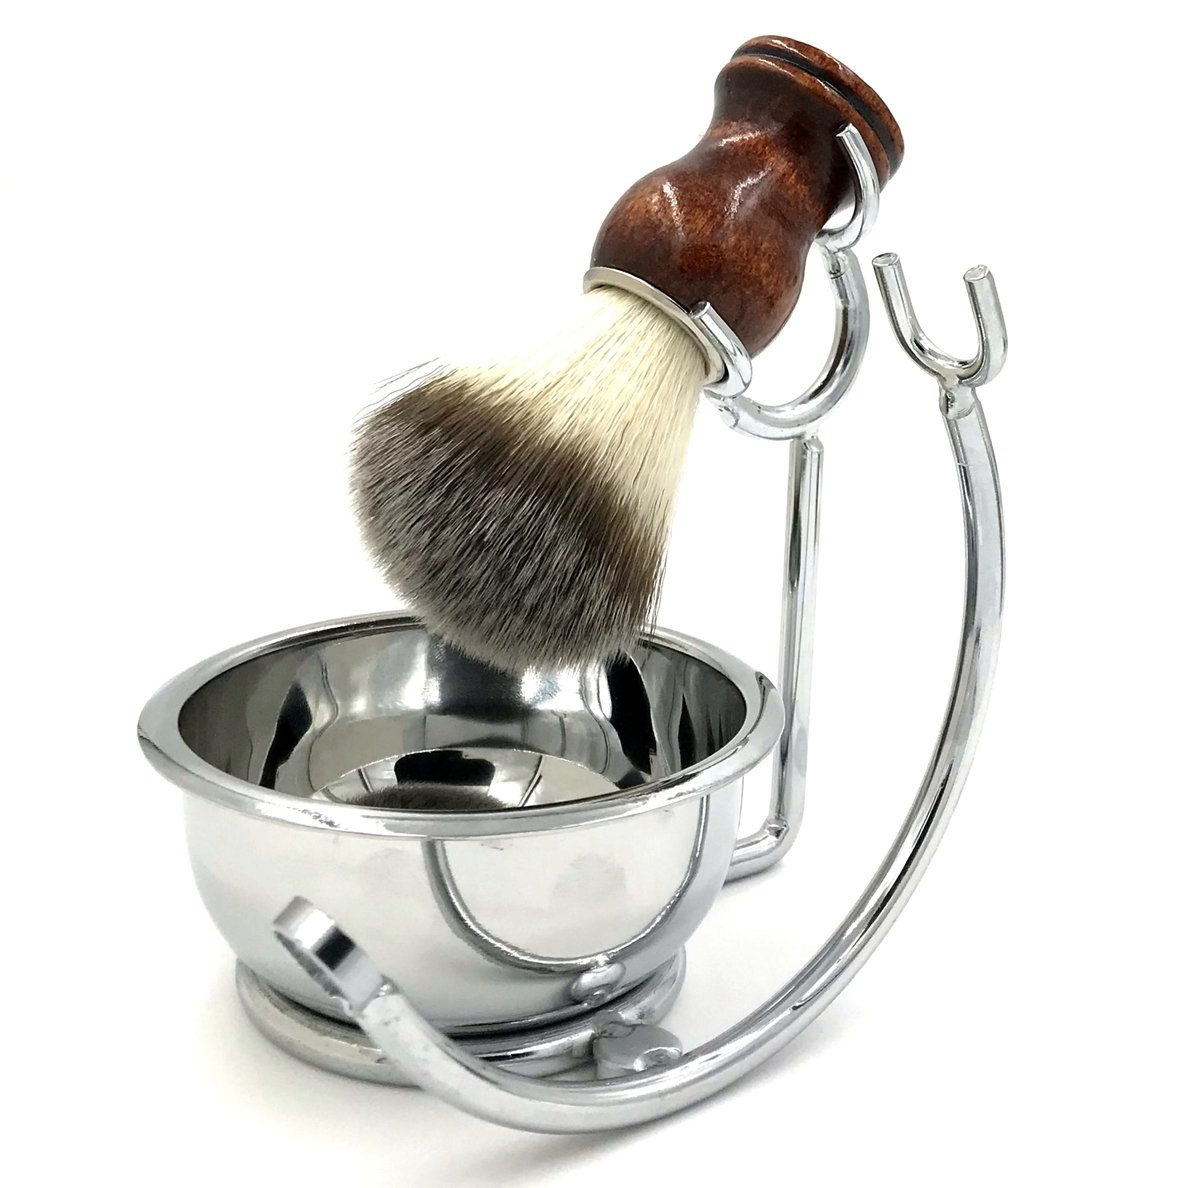 Strong Brush Stand + Men's Shaving Brush + Perfect Stainless Steel Shaving Soap Bowl,For Guaranteed Best Shave of Your Life. Use for Old Fashioned Double Edge Safety Razor or Multi Blade Razor